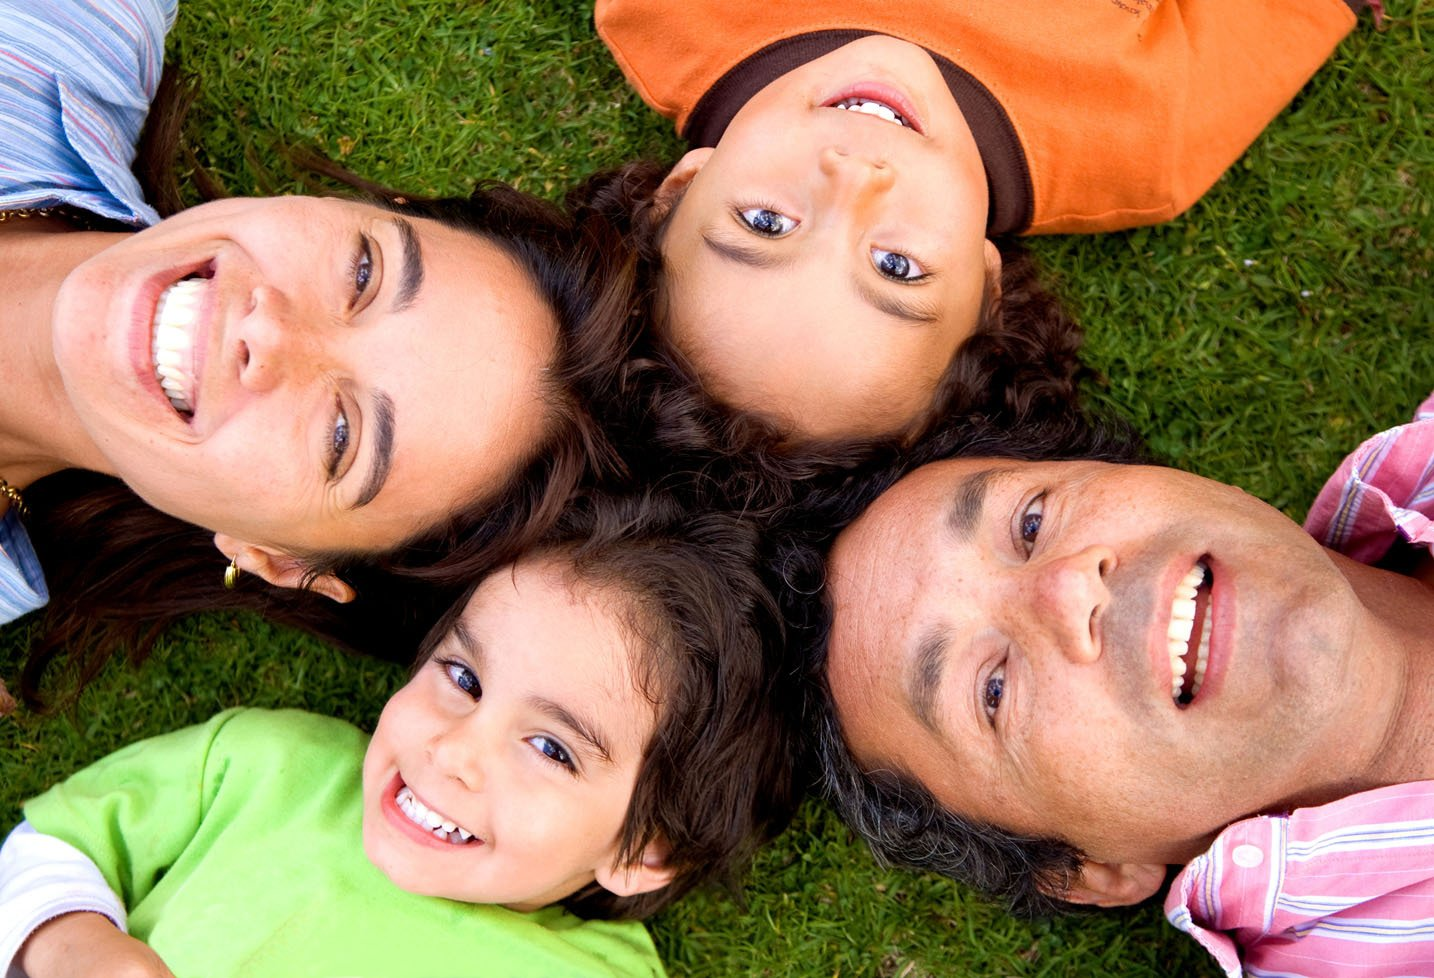 A literal family circle - parents and two children lying on grass in a circle